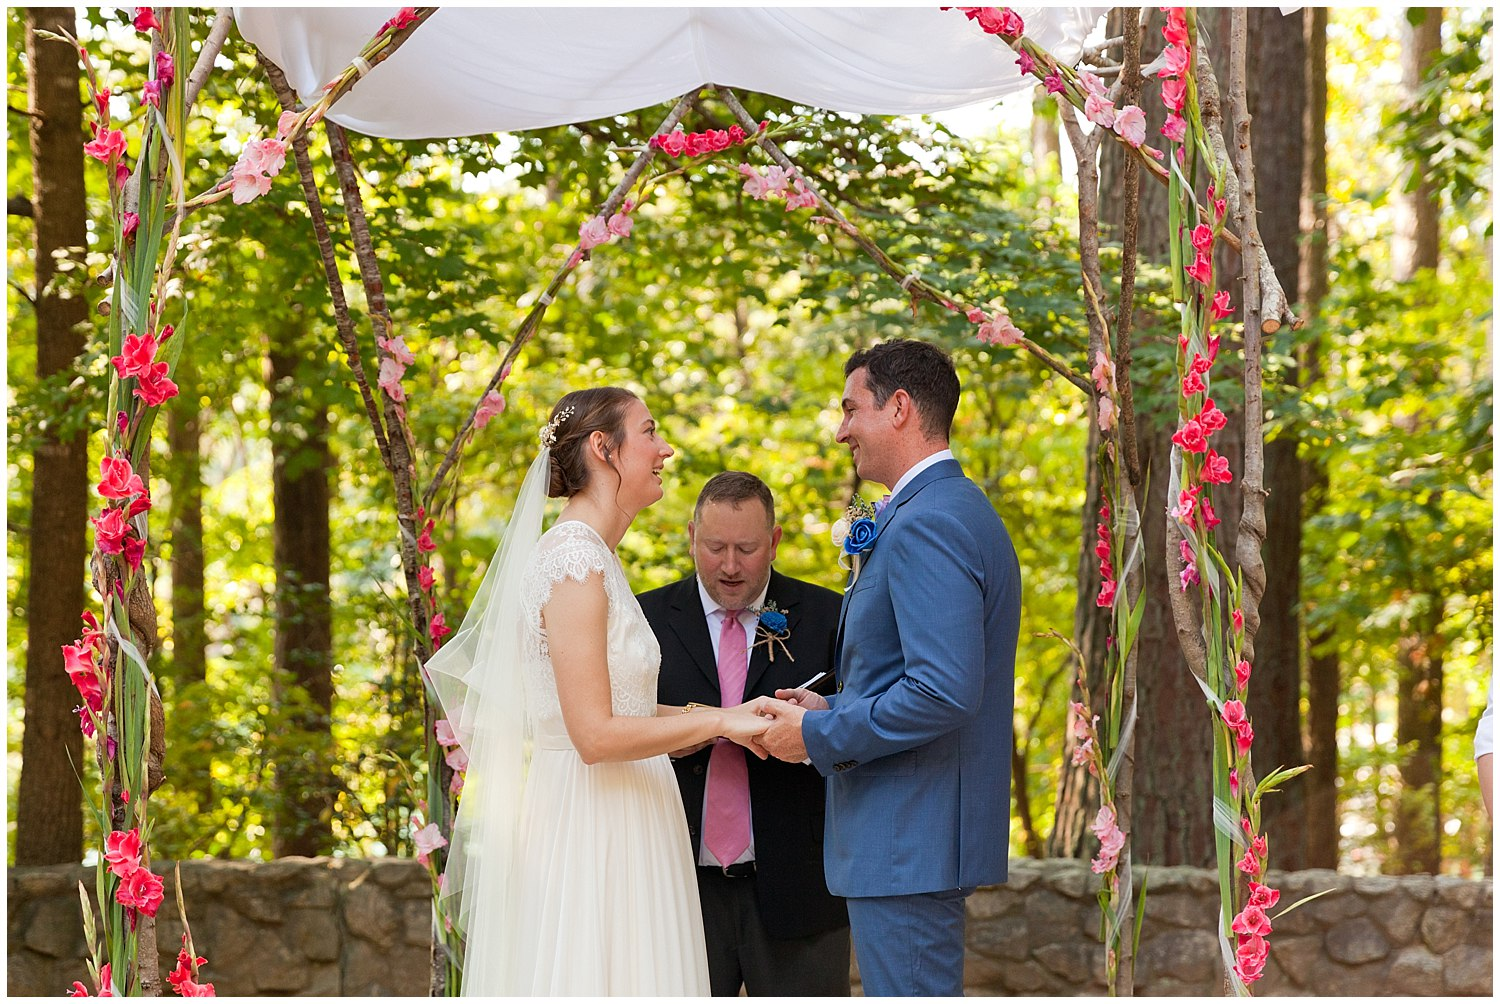 pretty outdoor wedding ceremony with floral chuppah